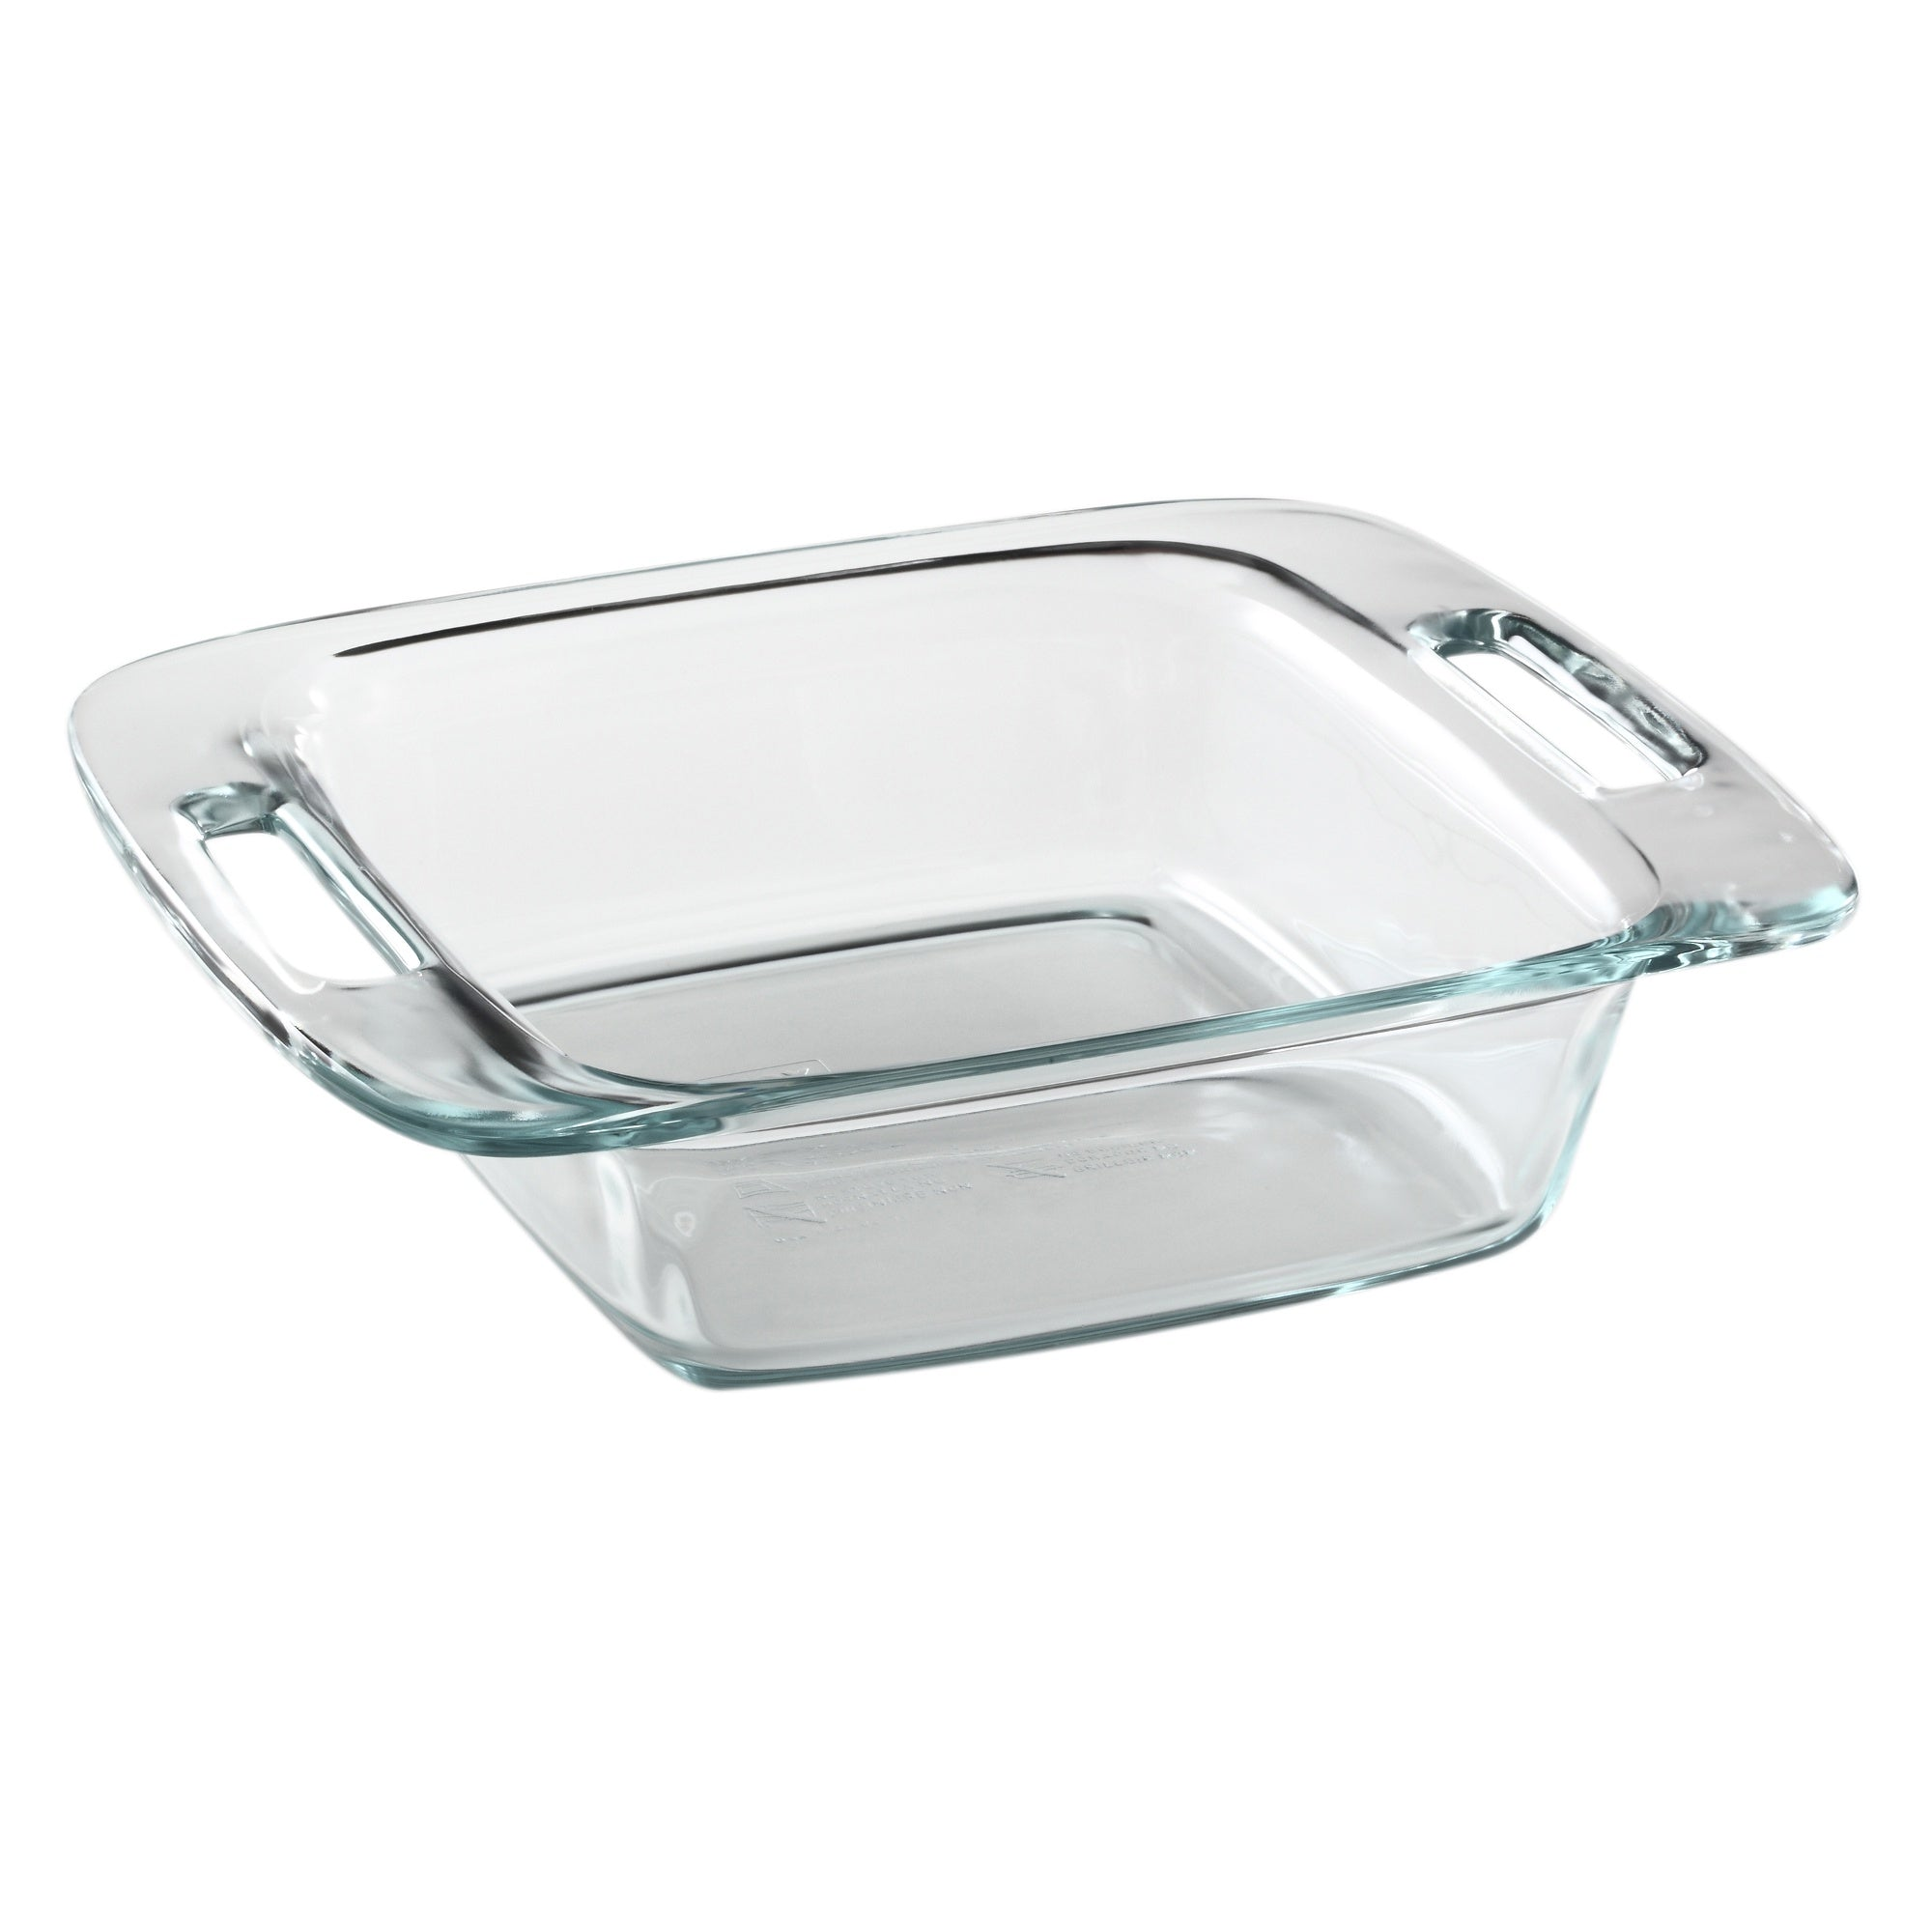 Pyrex GBW Easy Grab 20cm Square Baking Dish-1085797